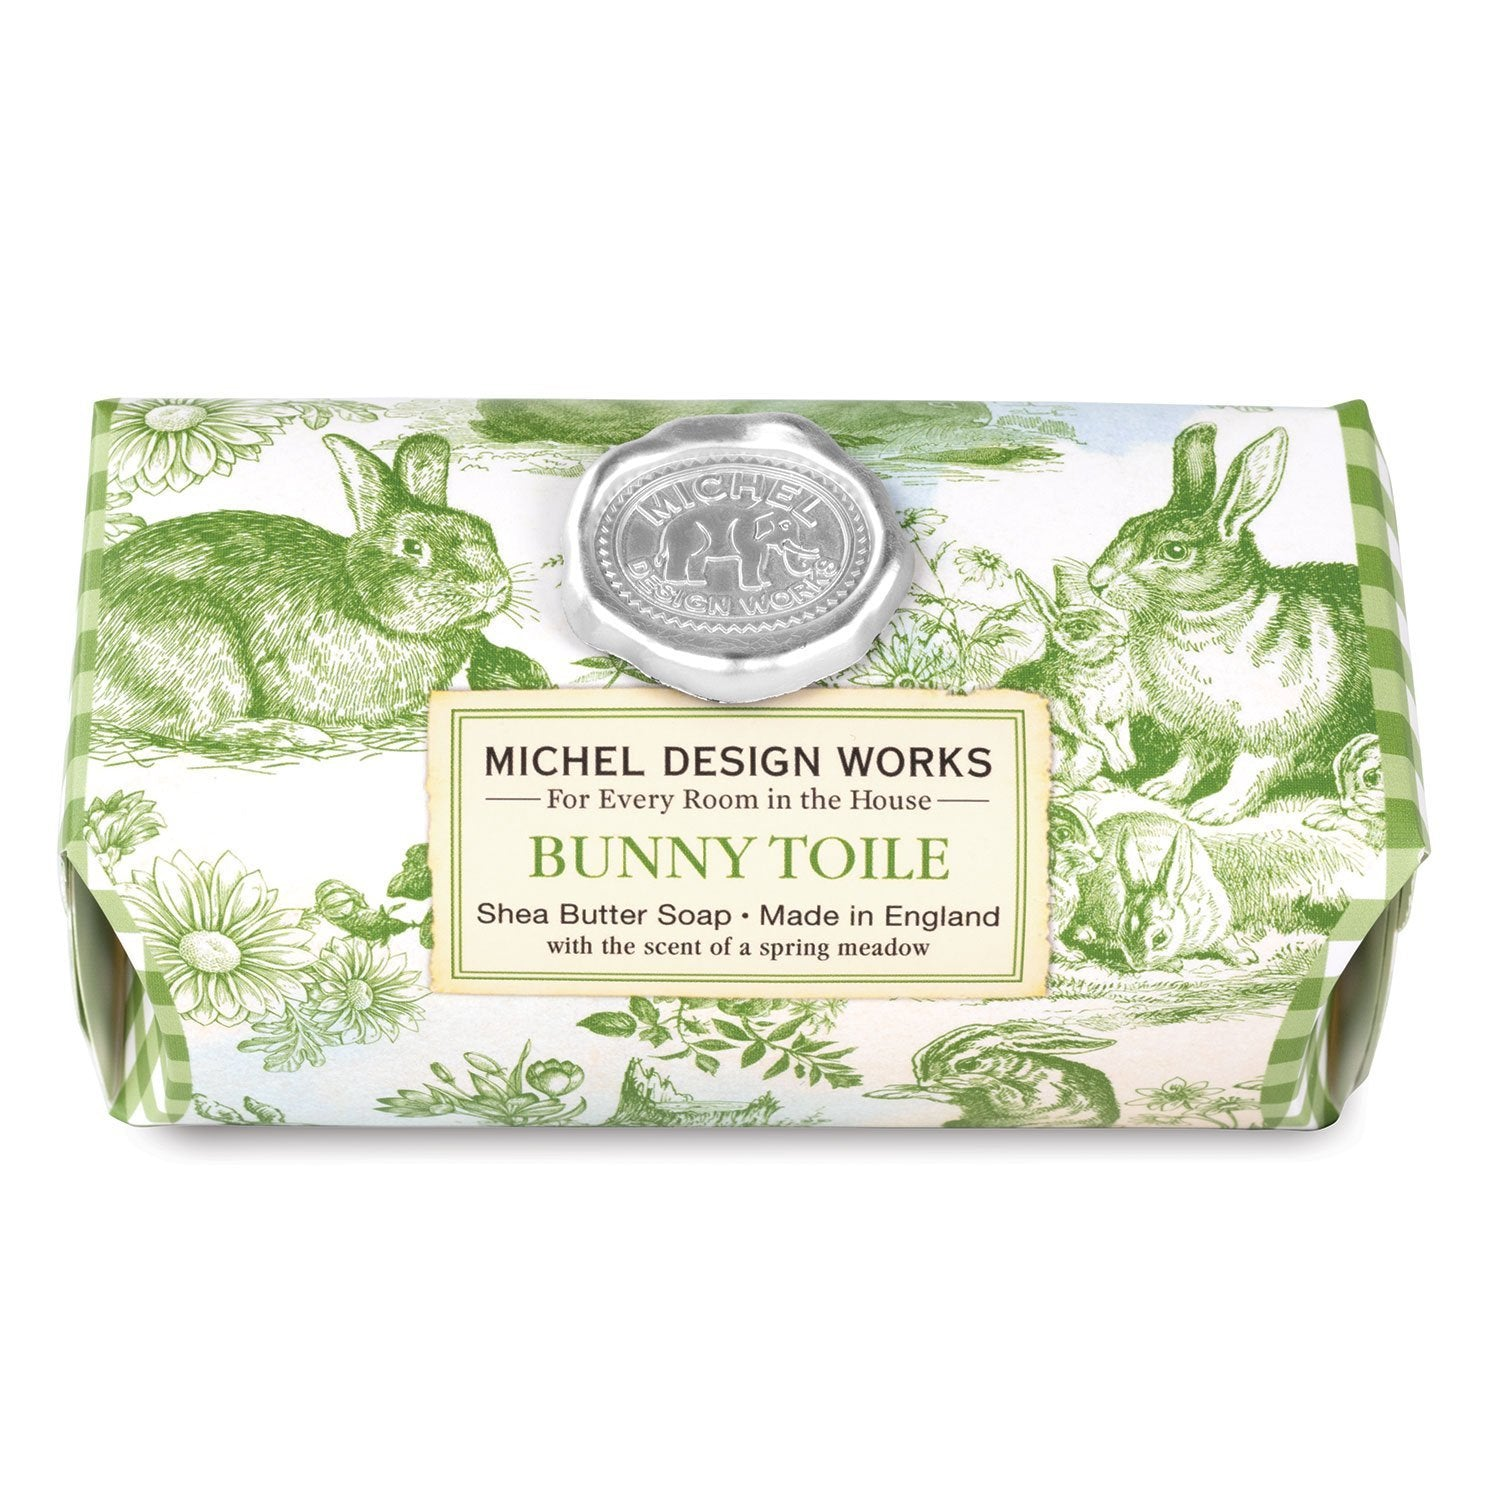 Bunny Toile Shea Butter Soap